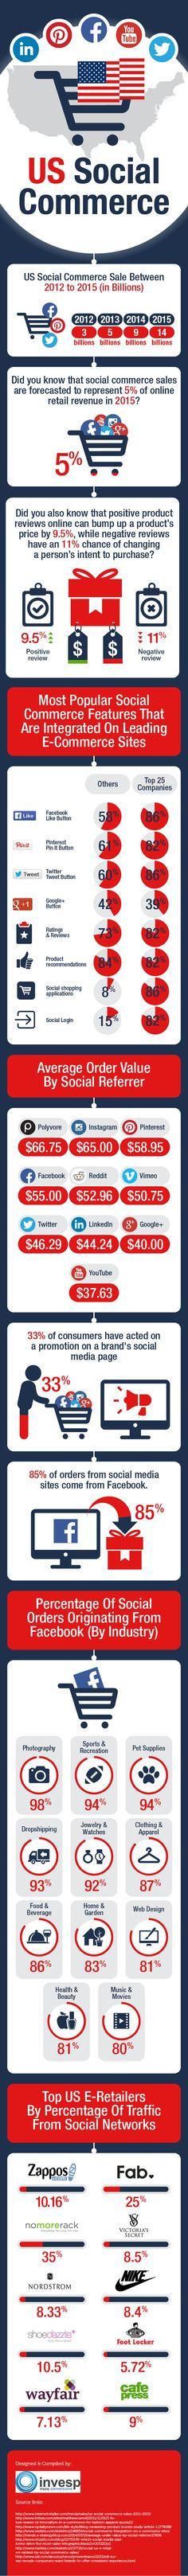 How Are Top Social Networks Driving #SocialCommerce And #ECommerce In 2015? #infographic